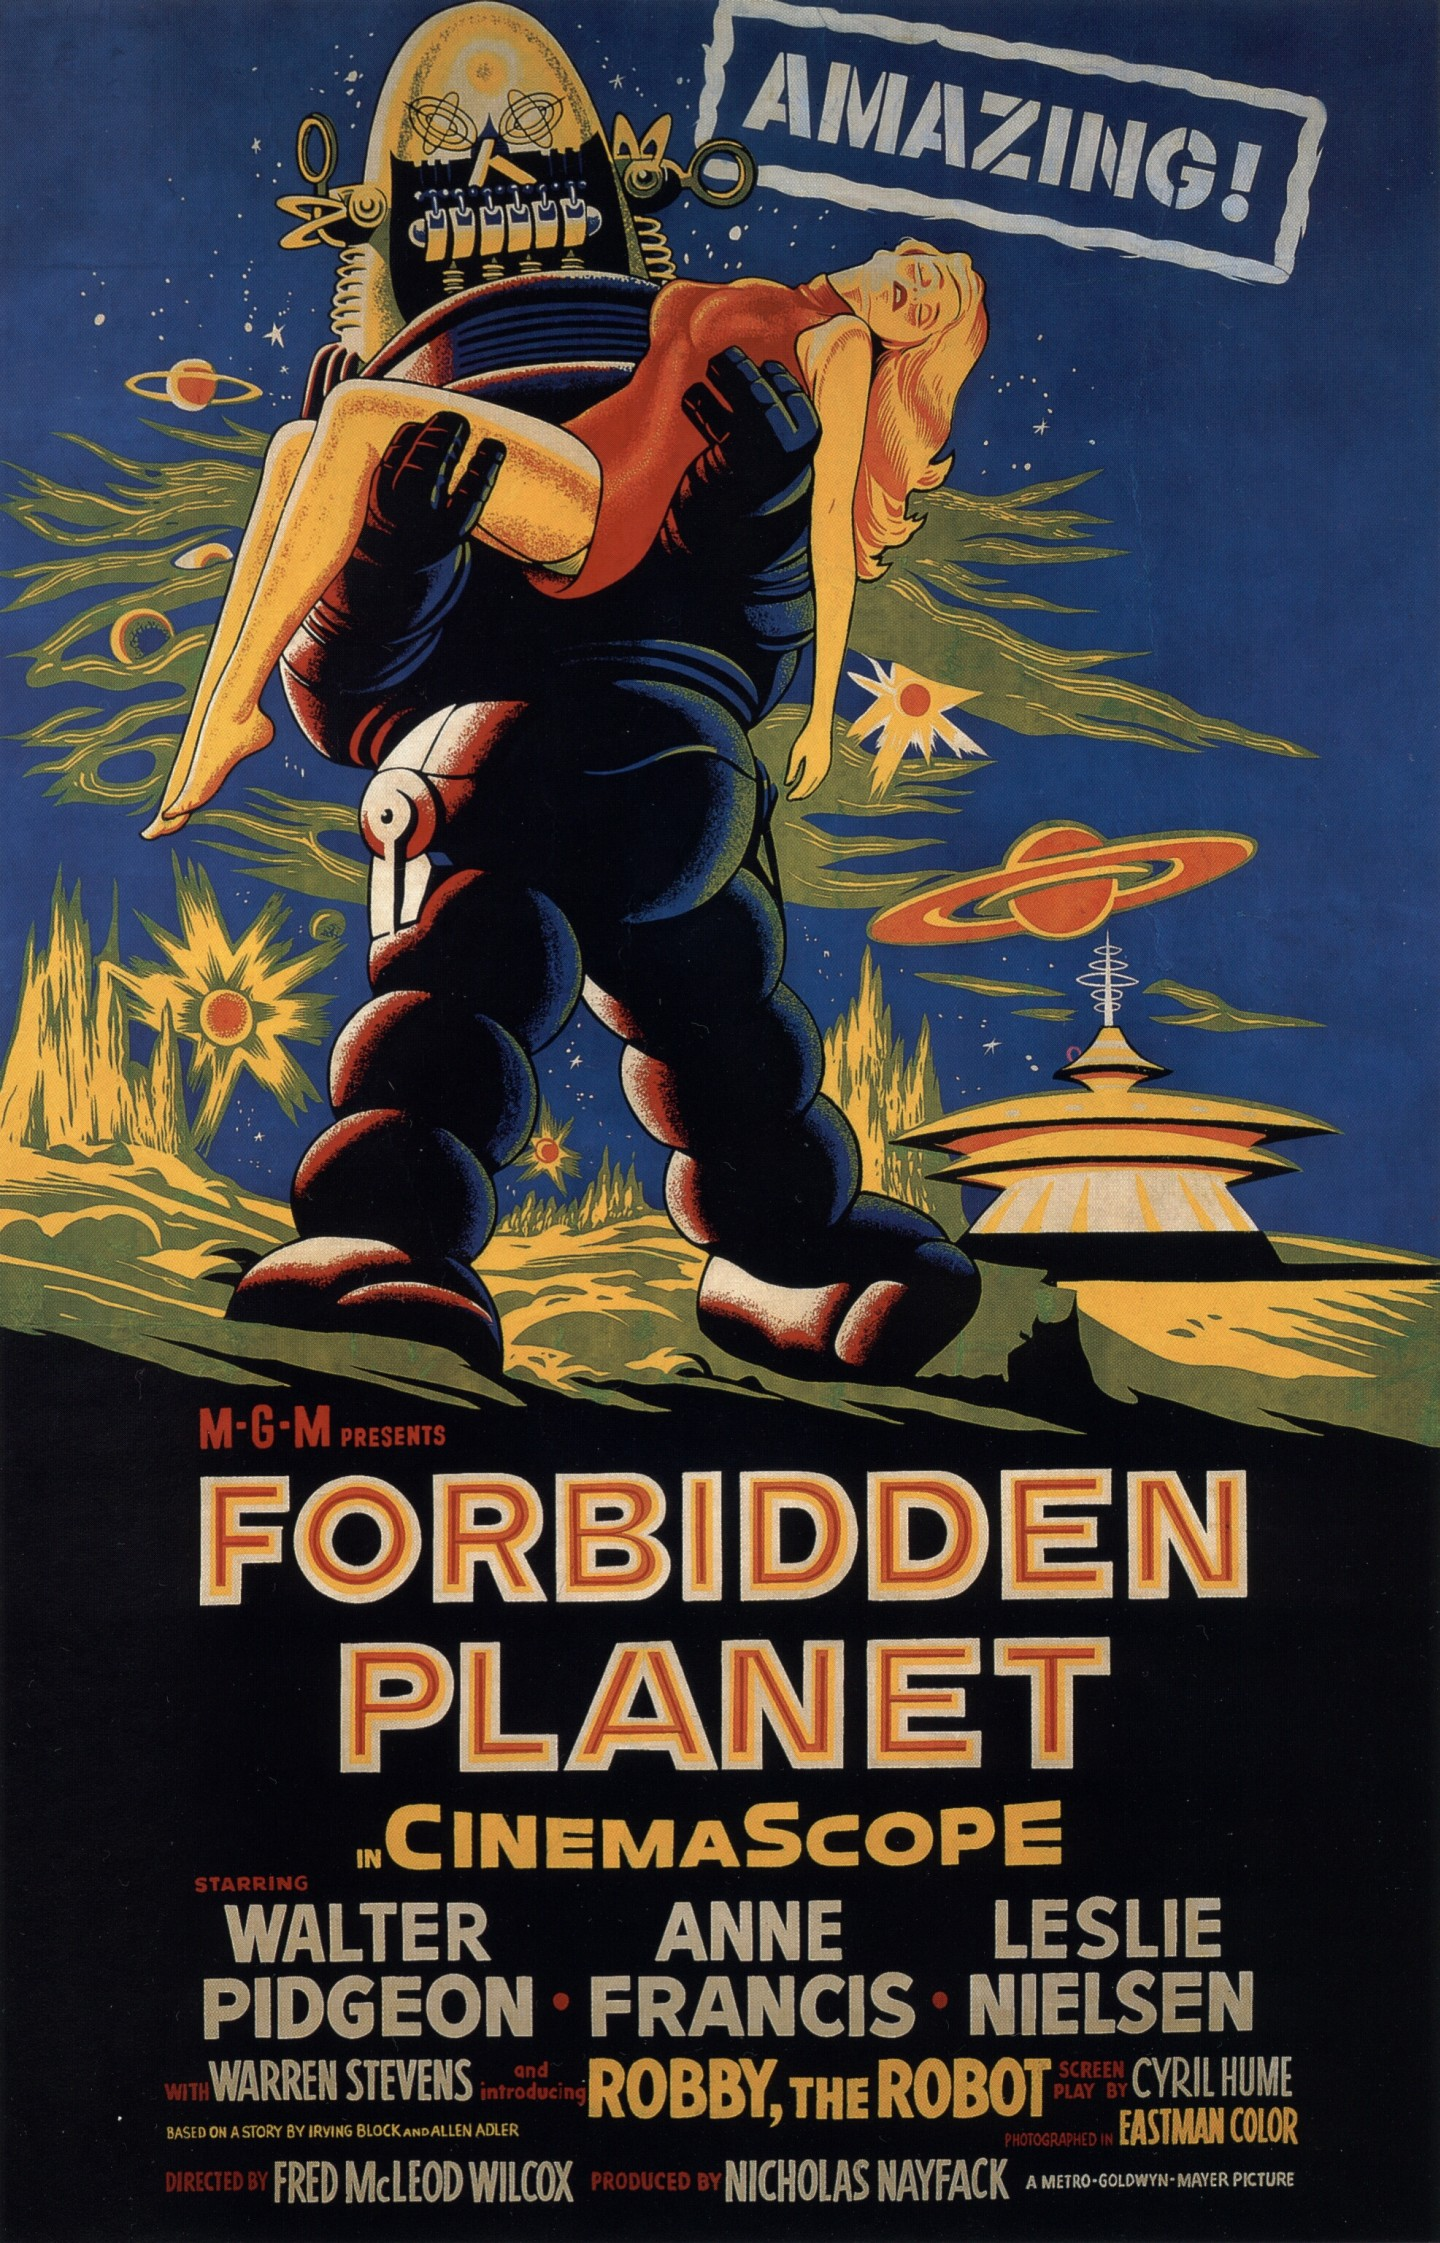 forbidden planet, forbidden planet movie, forbidden planet poster